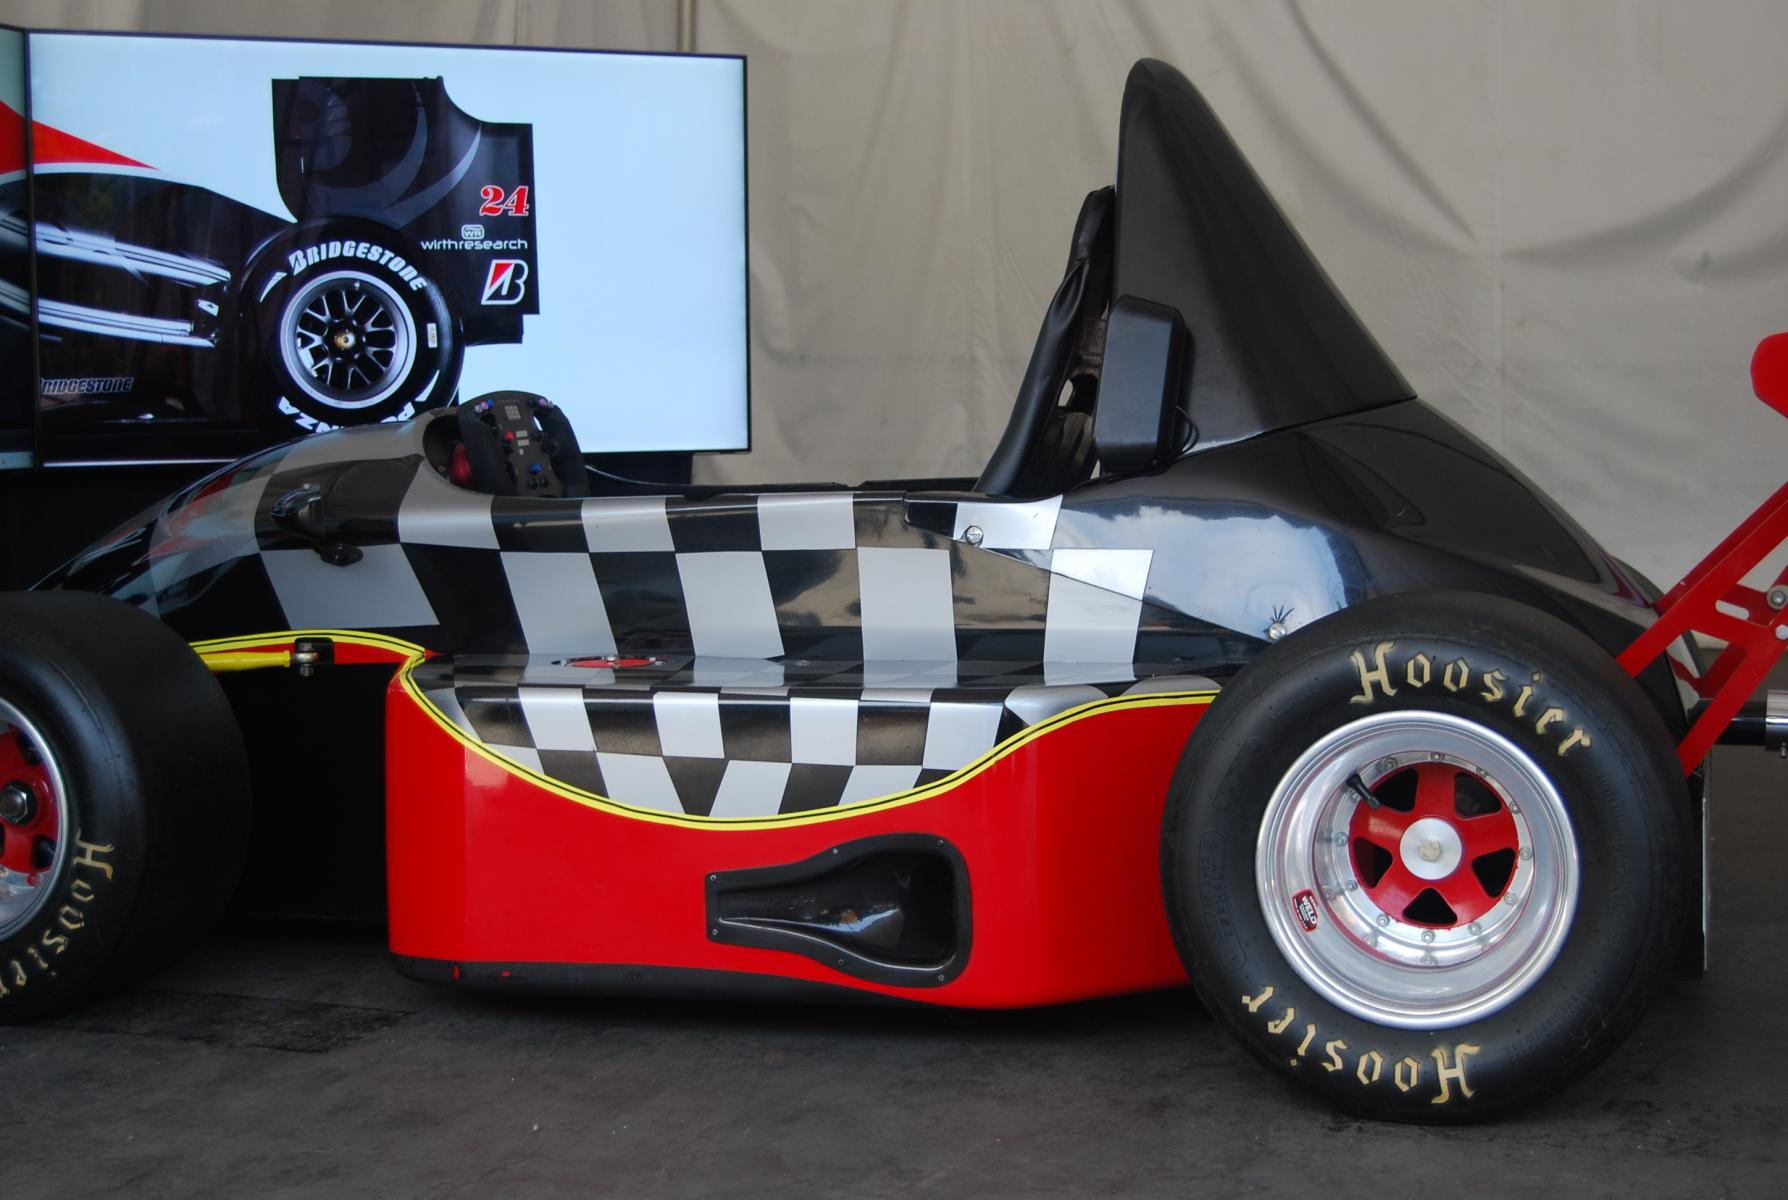 formula one racing simulation - photo #28